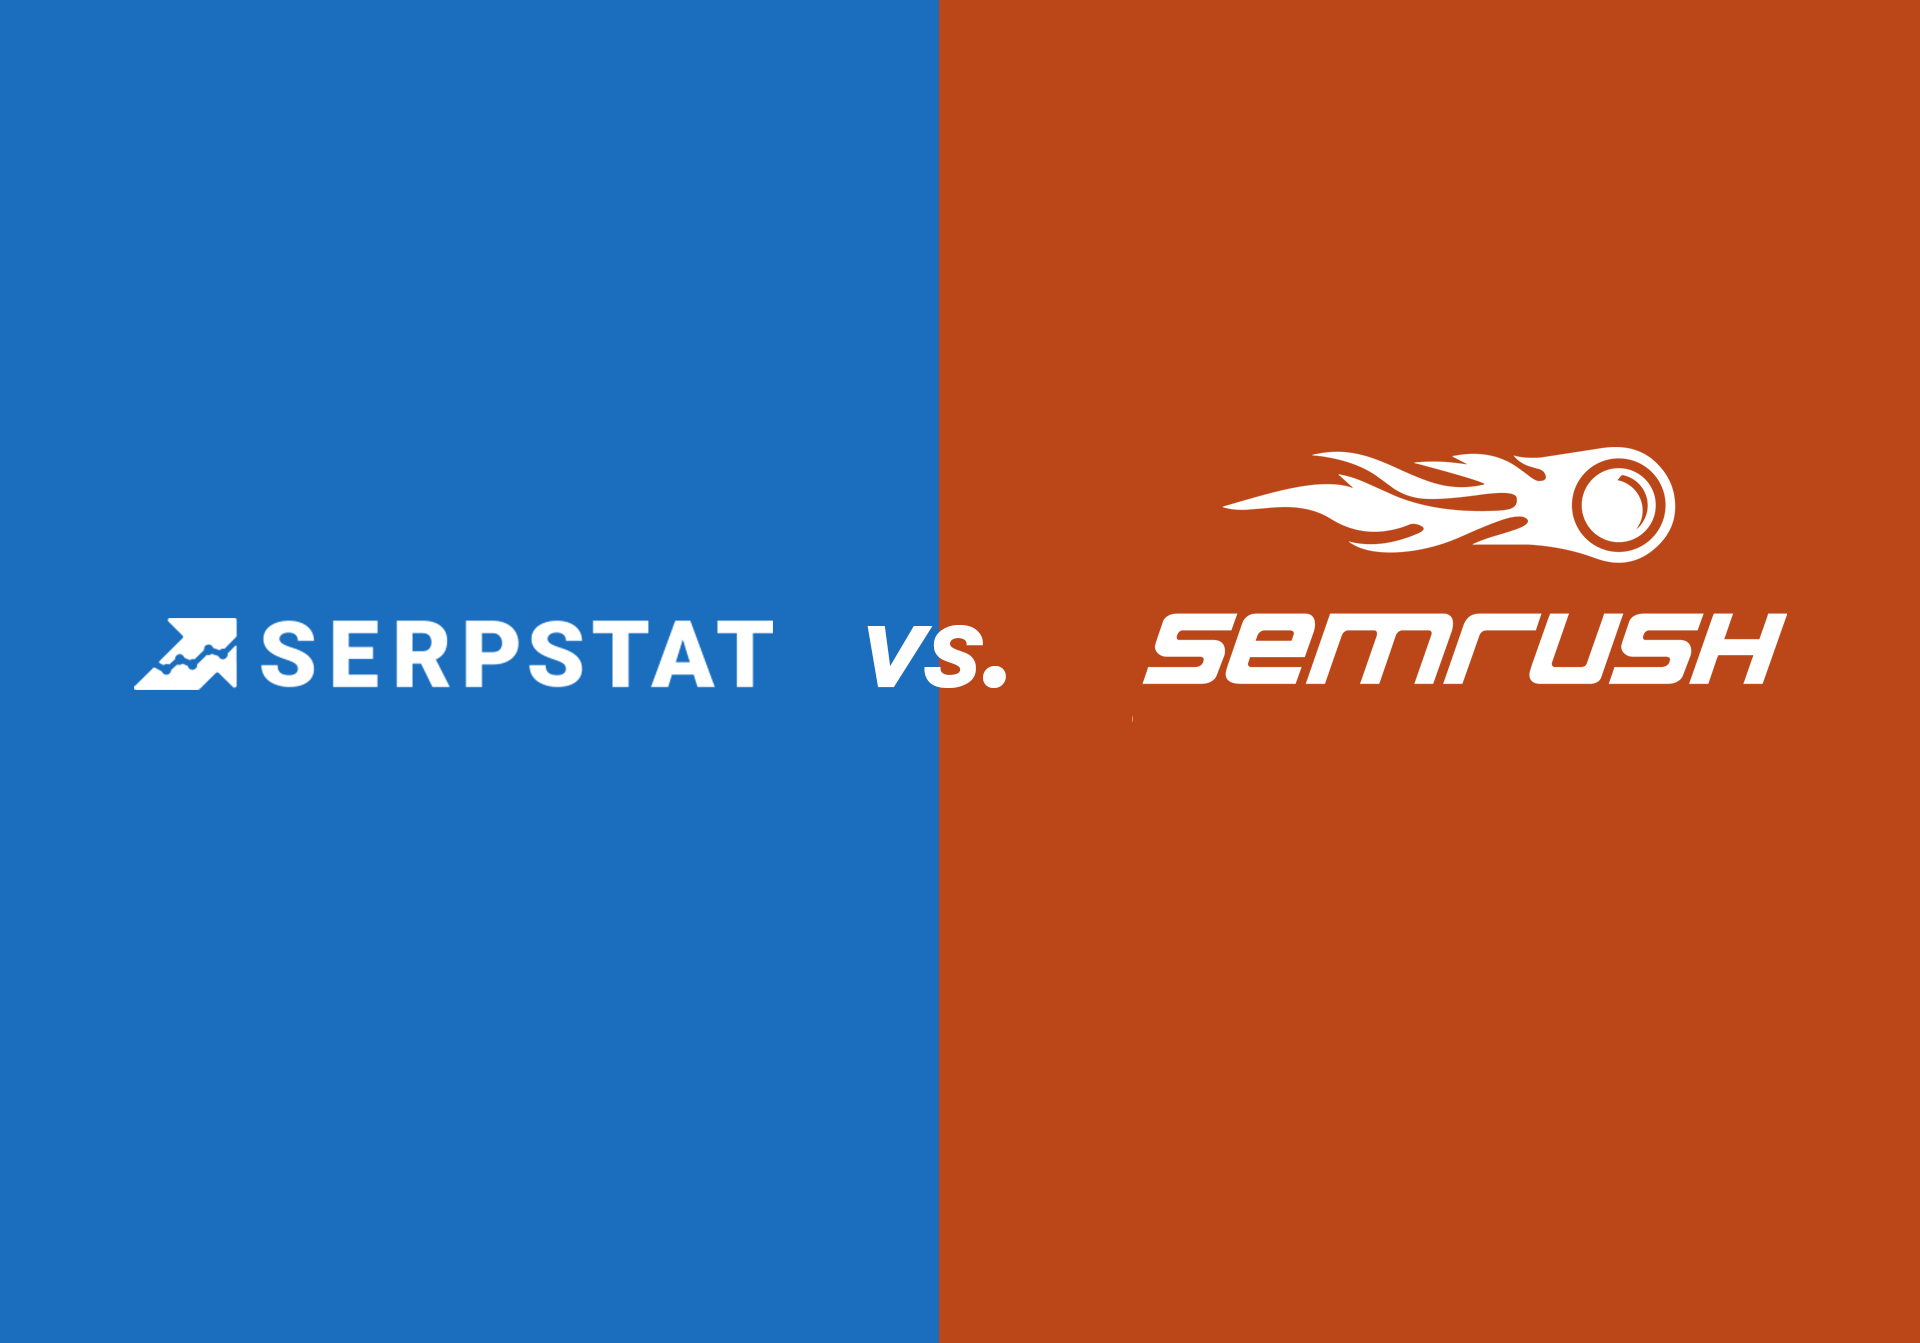 Buy Seo Software Semrush How Much Is It